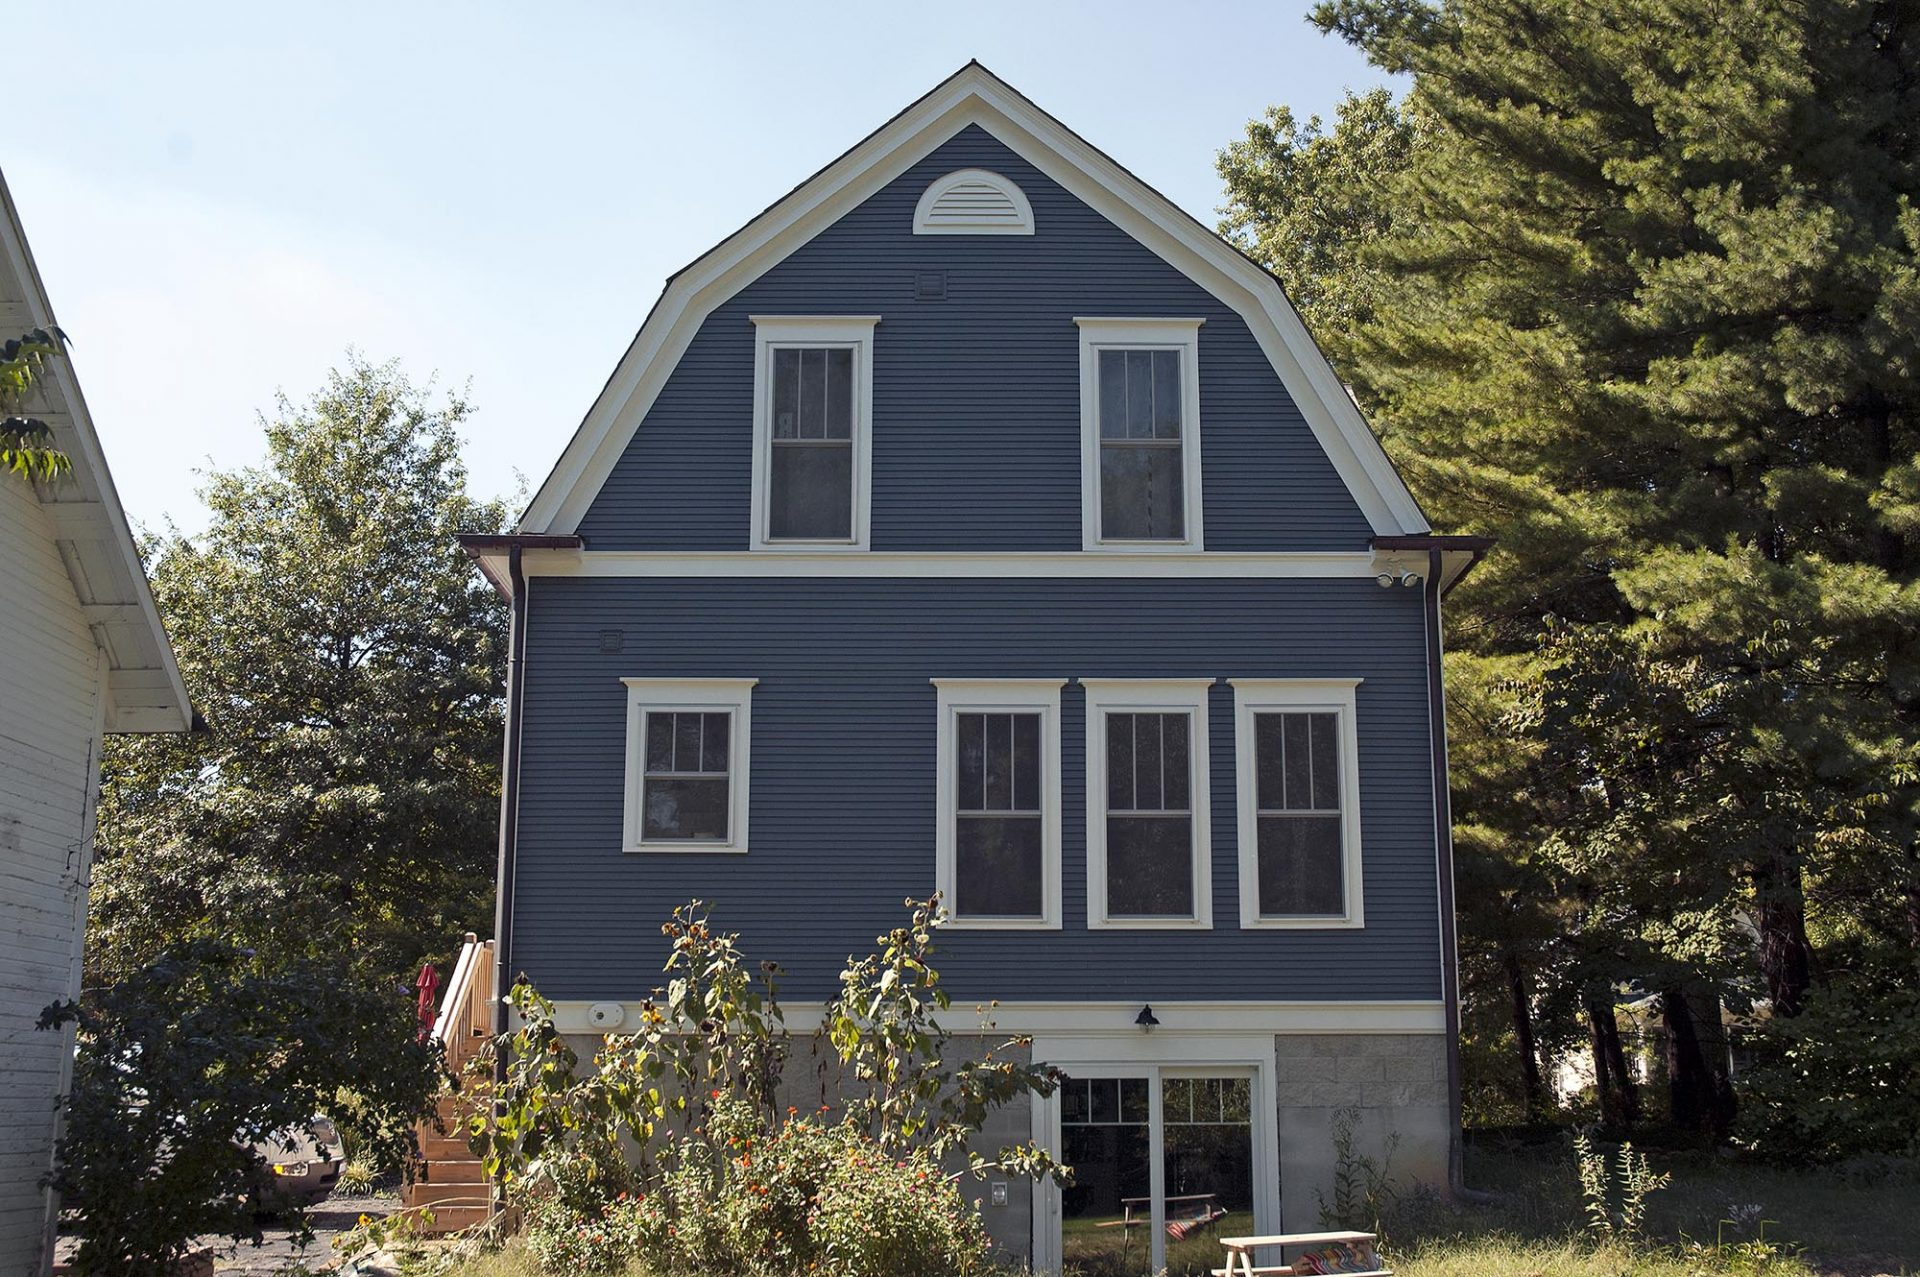 Room Addition, Exterior, Worthington, Dave Fox, Remodel, Blue, farm house